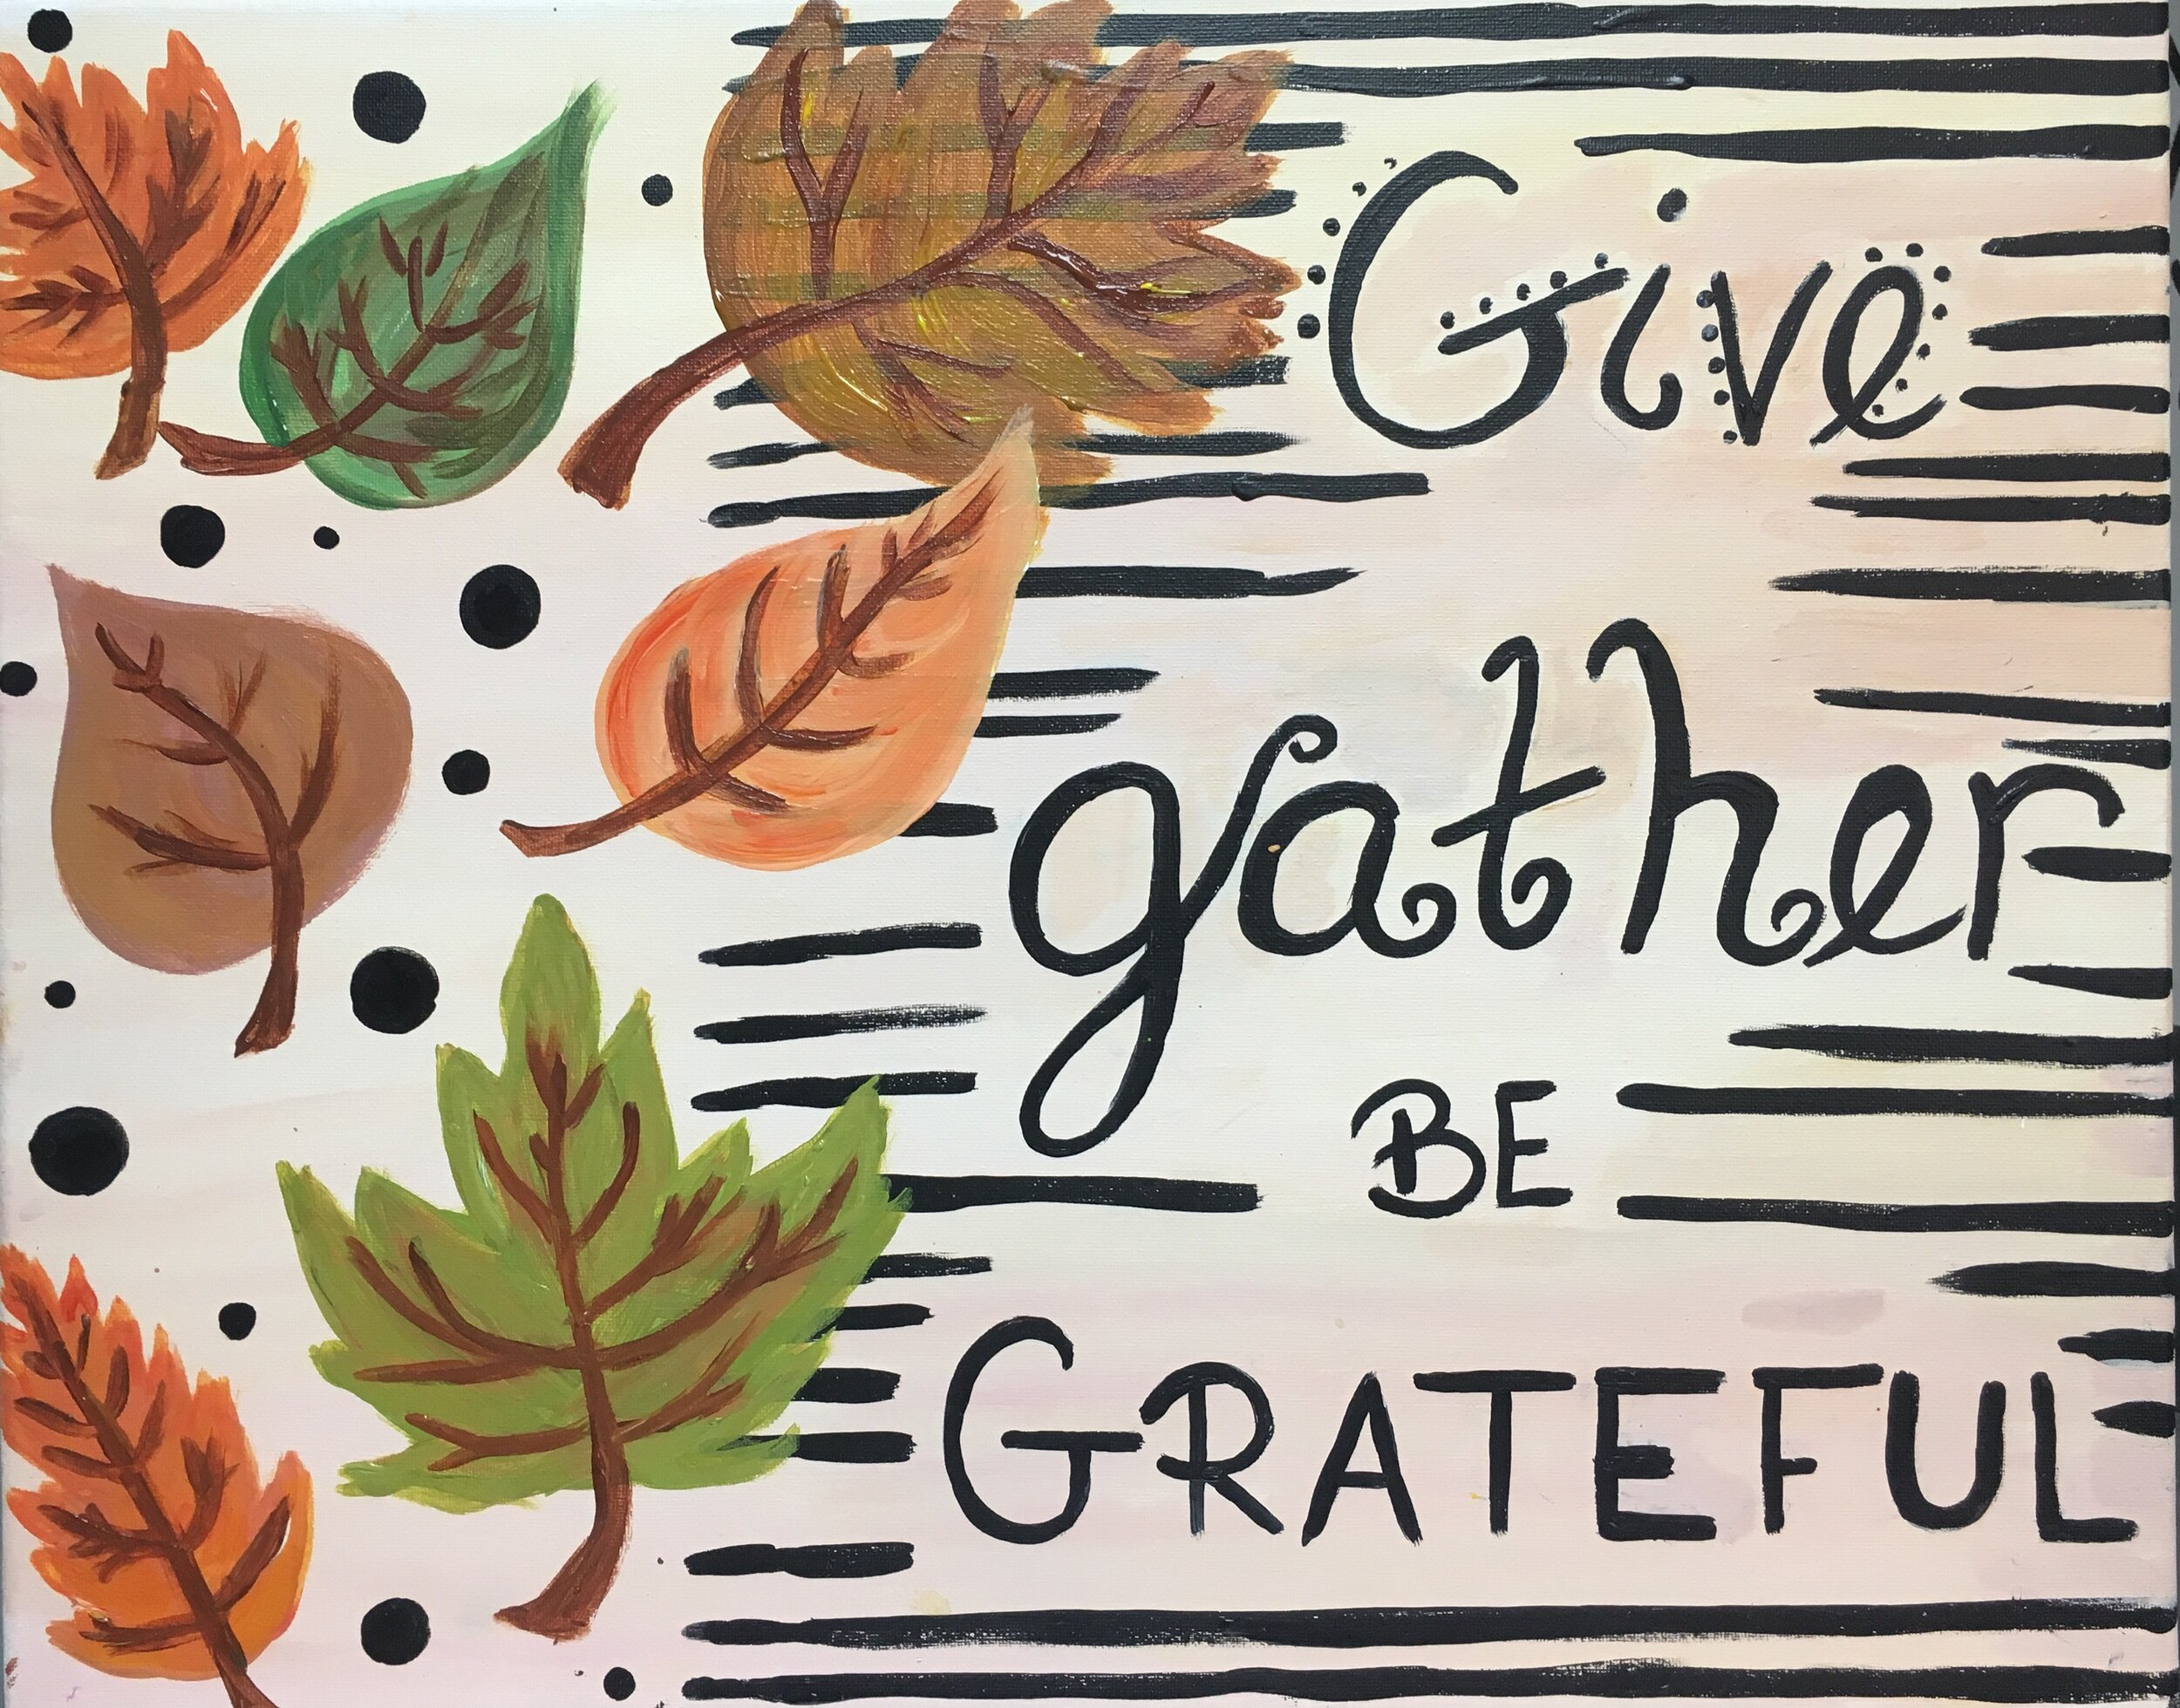 Give, Gather, Be Grateful